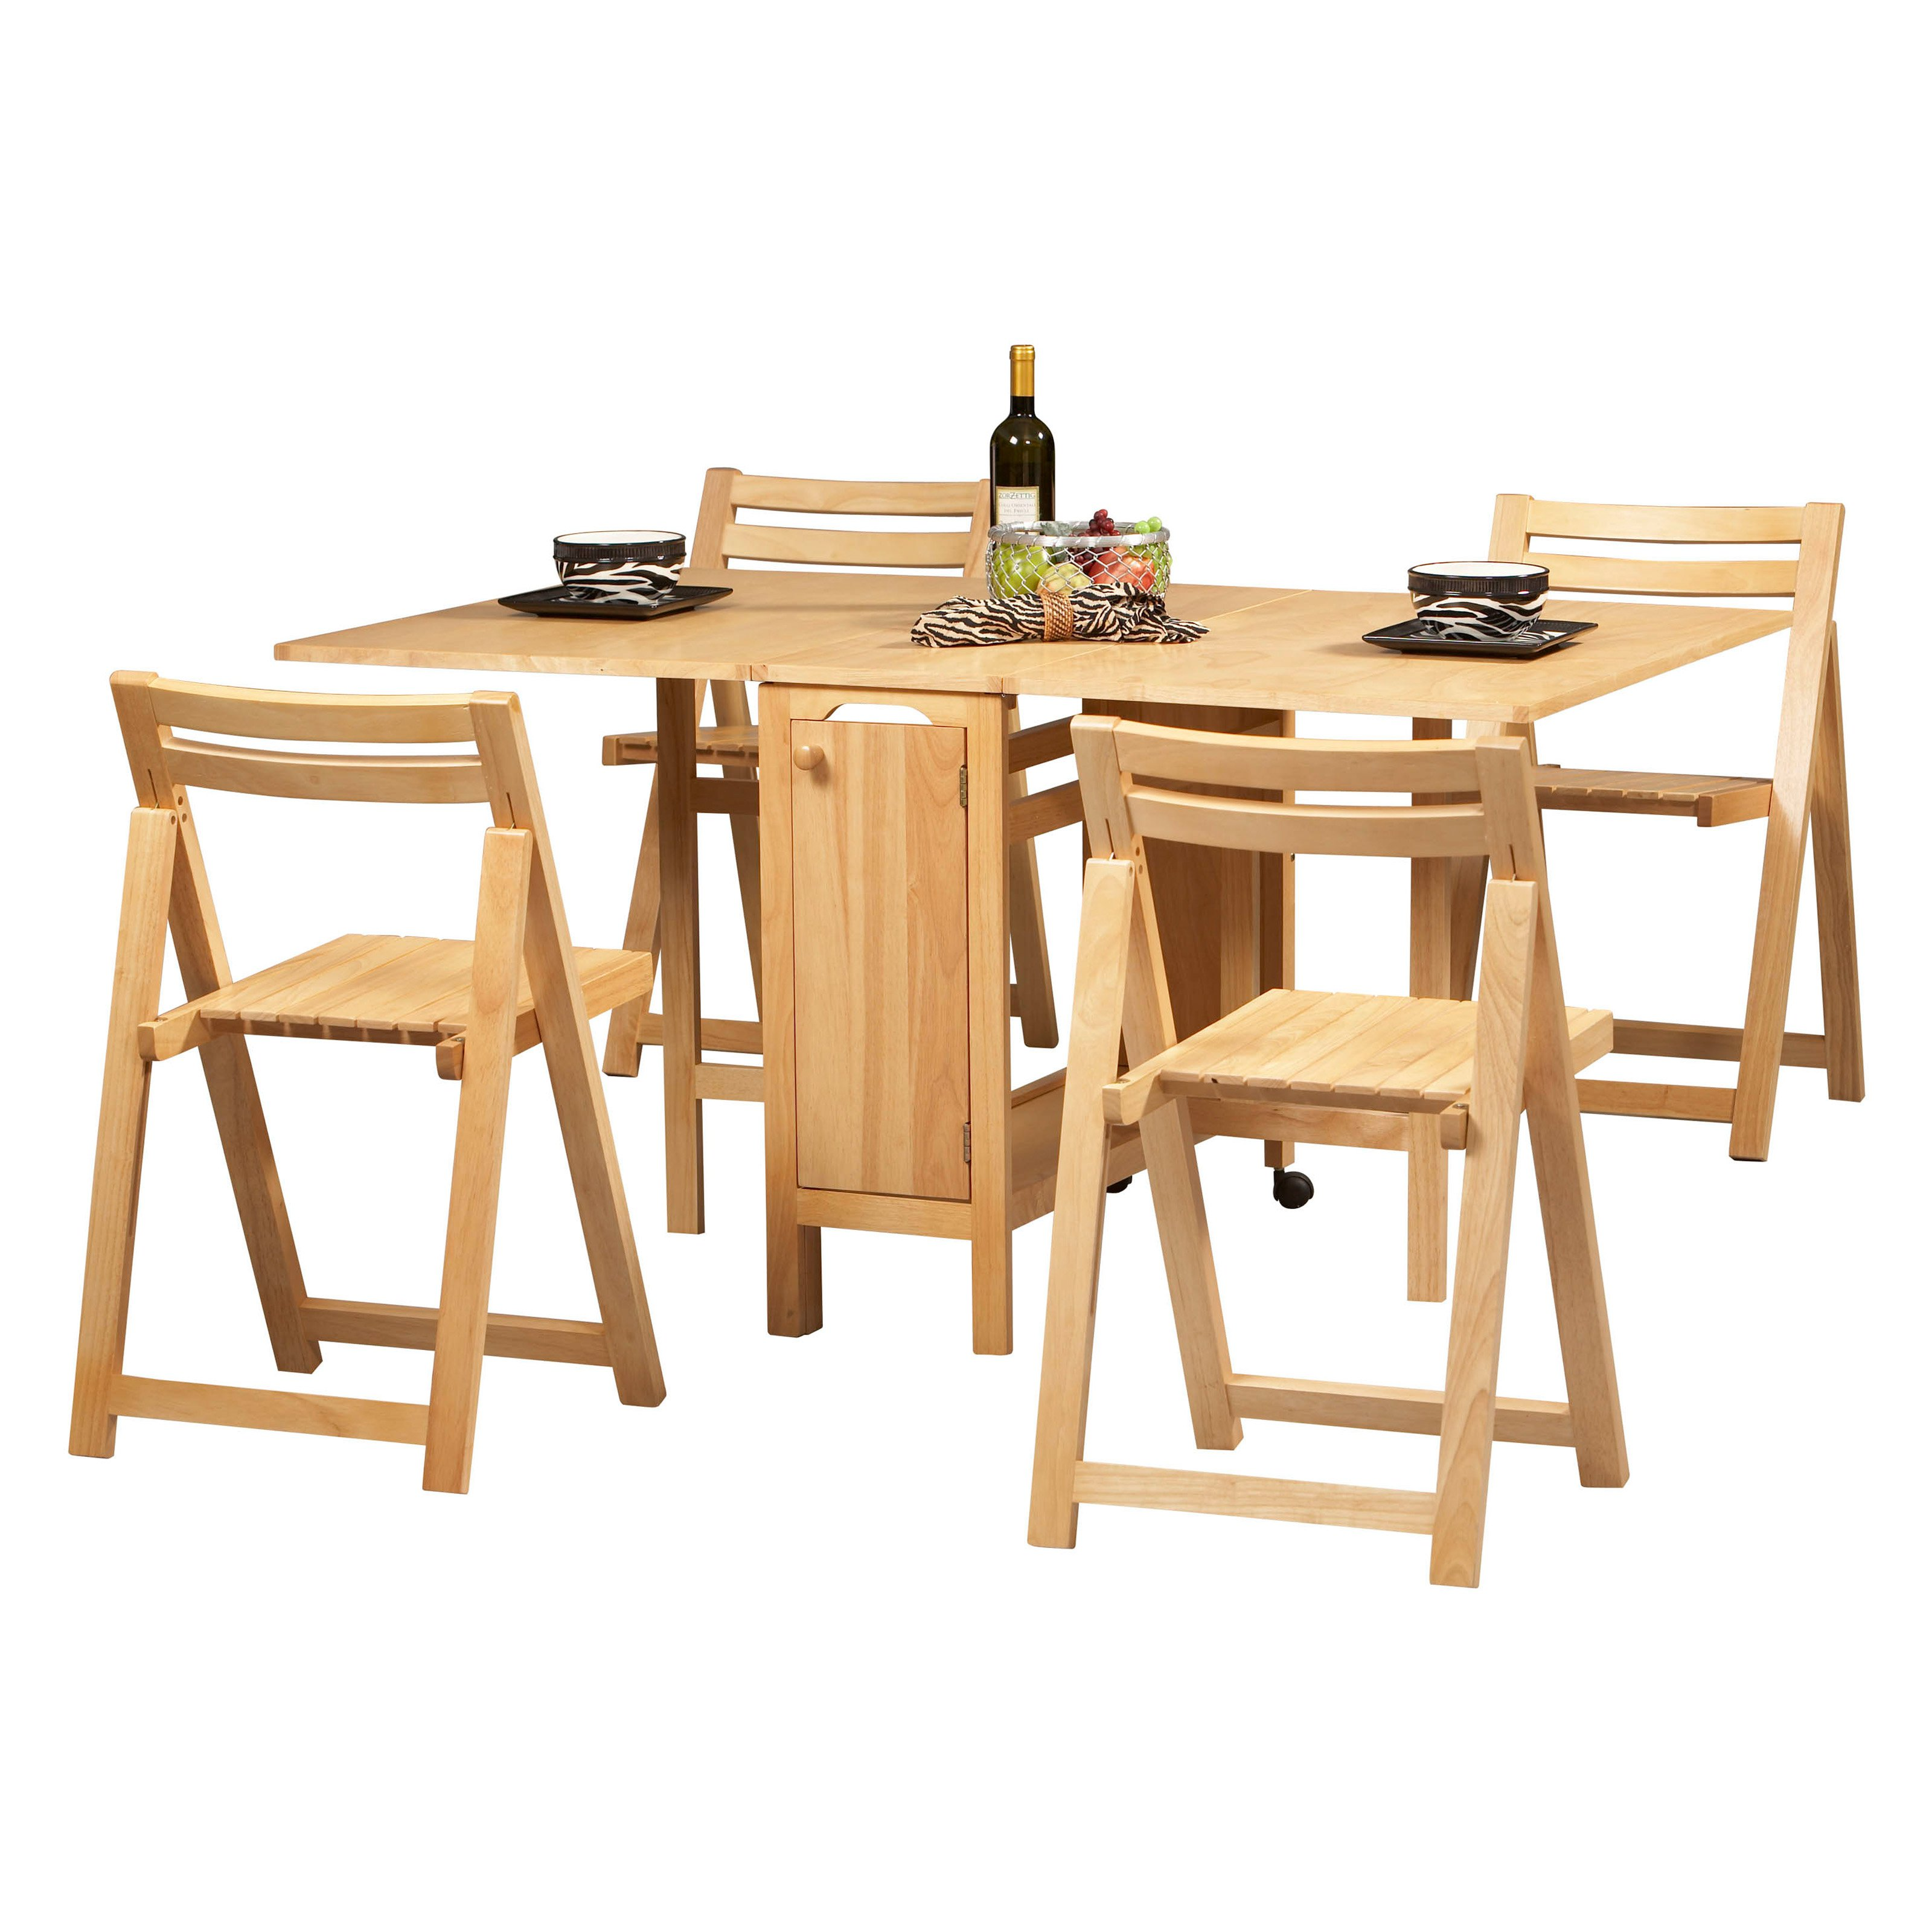 Chic folding table with chairs folding table and chairs set linon space saver 5 pc folding table and etkiana